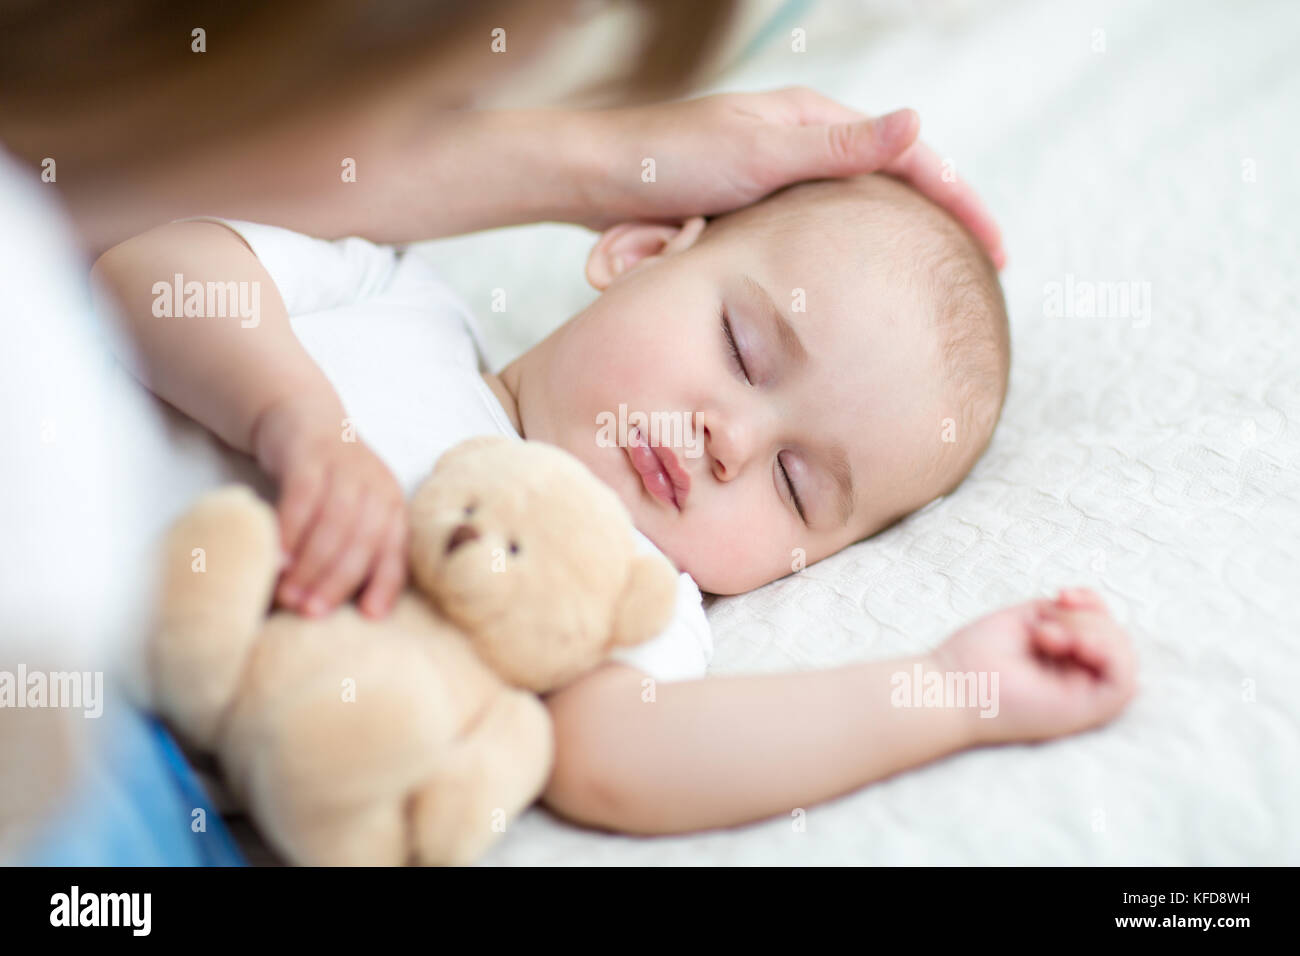 Motherhood. Parenthood. Young mother looking at her baby infant sleeping in bed - Stock Image